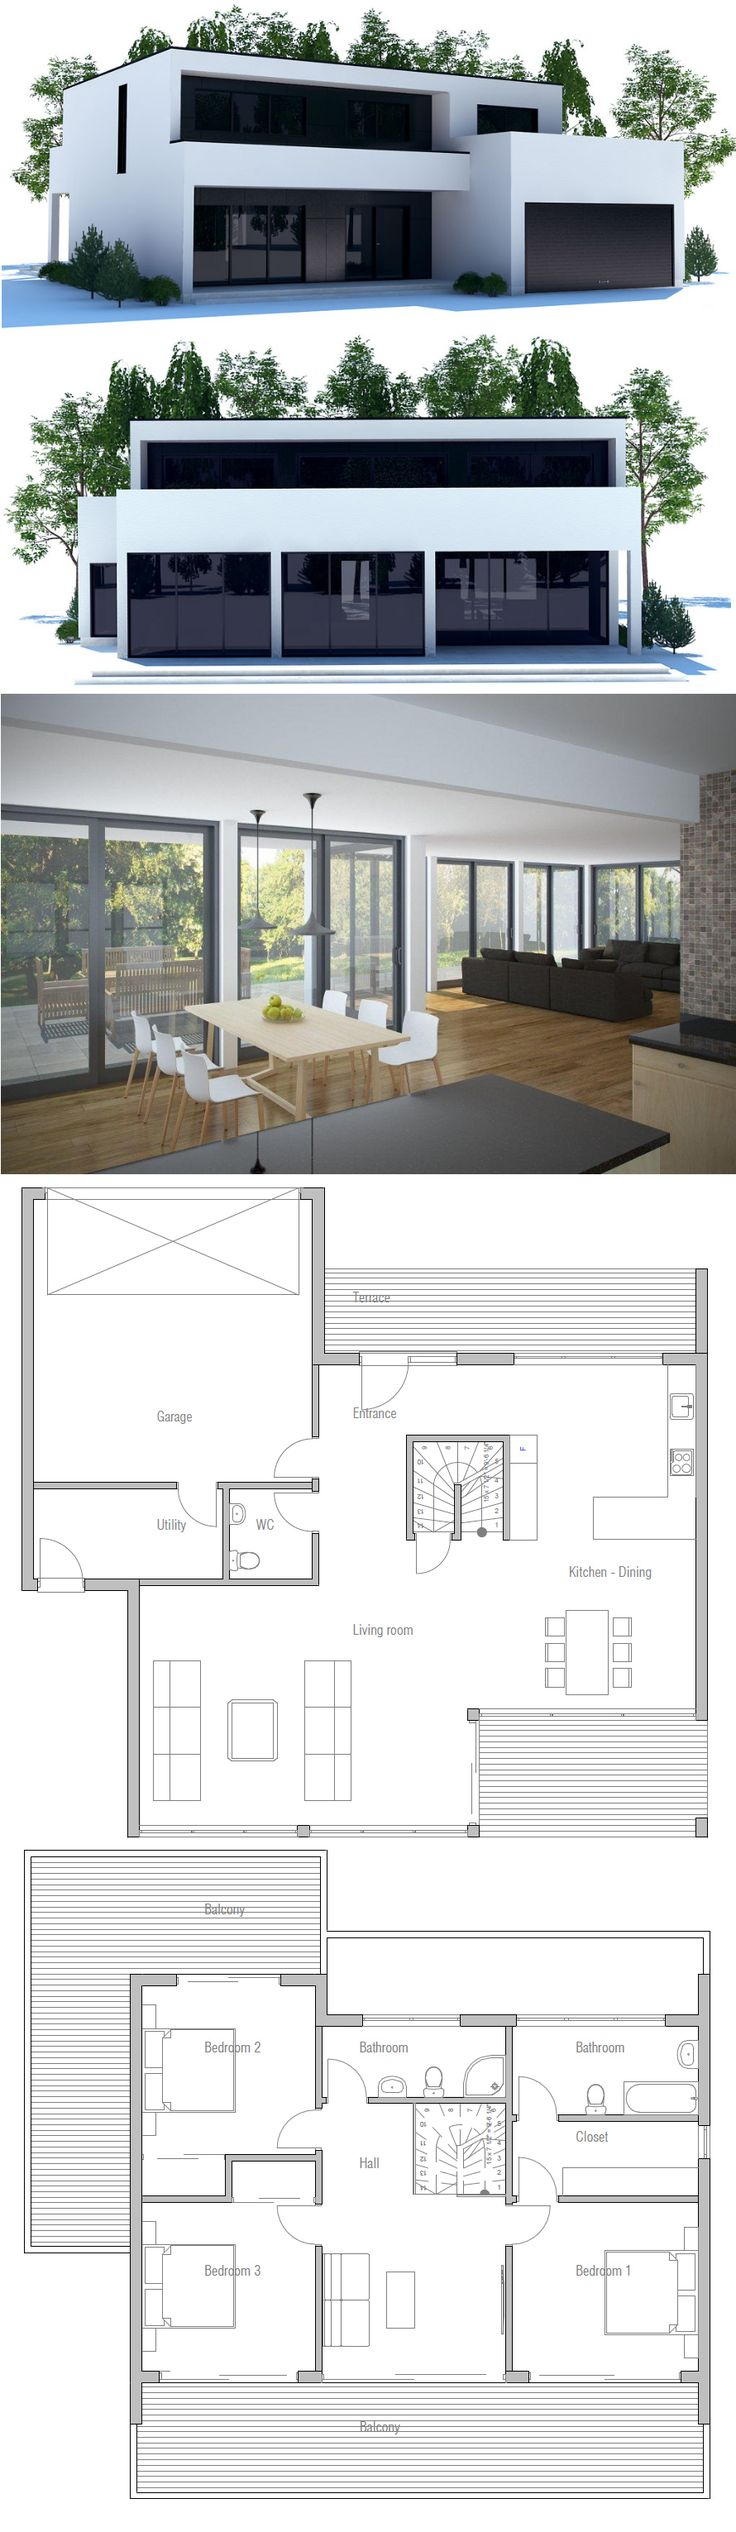 335 best Container house images on Pinterest | Container houses ...